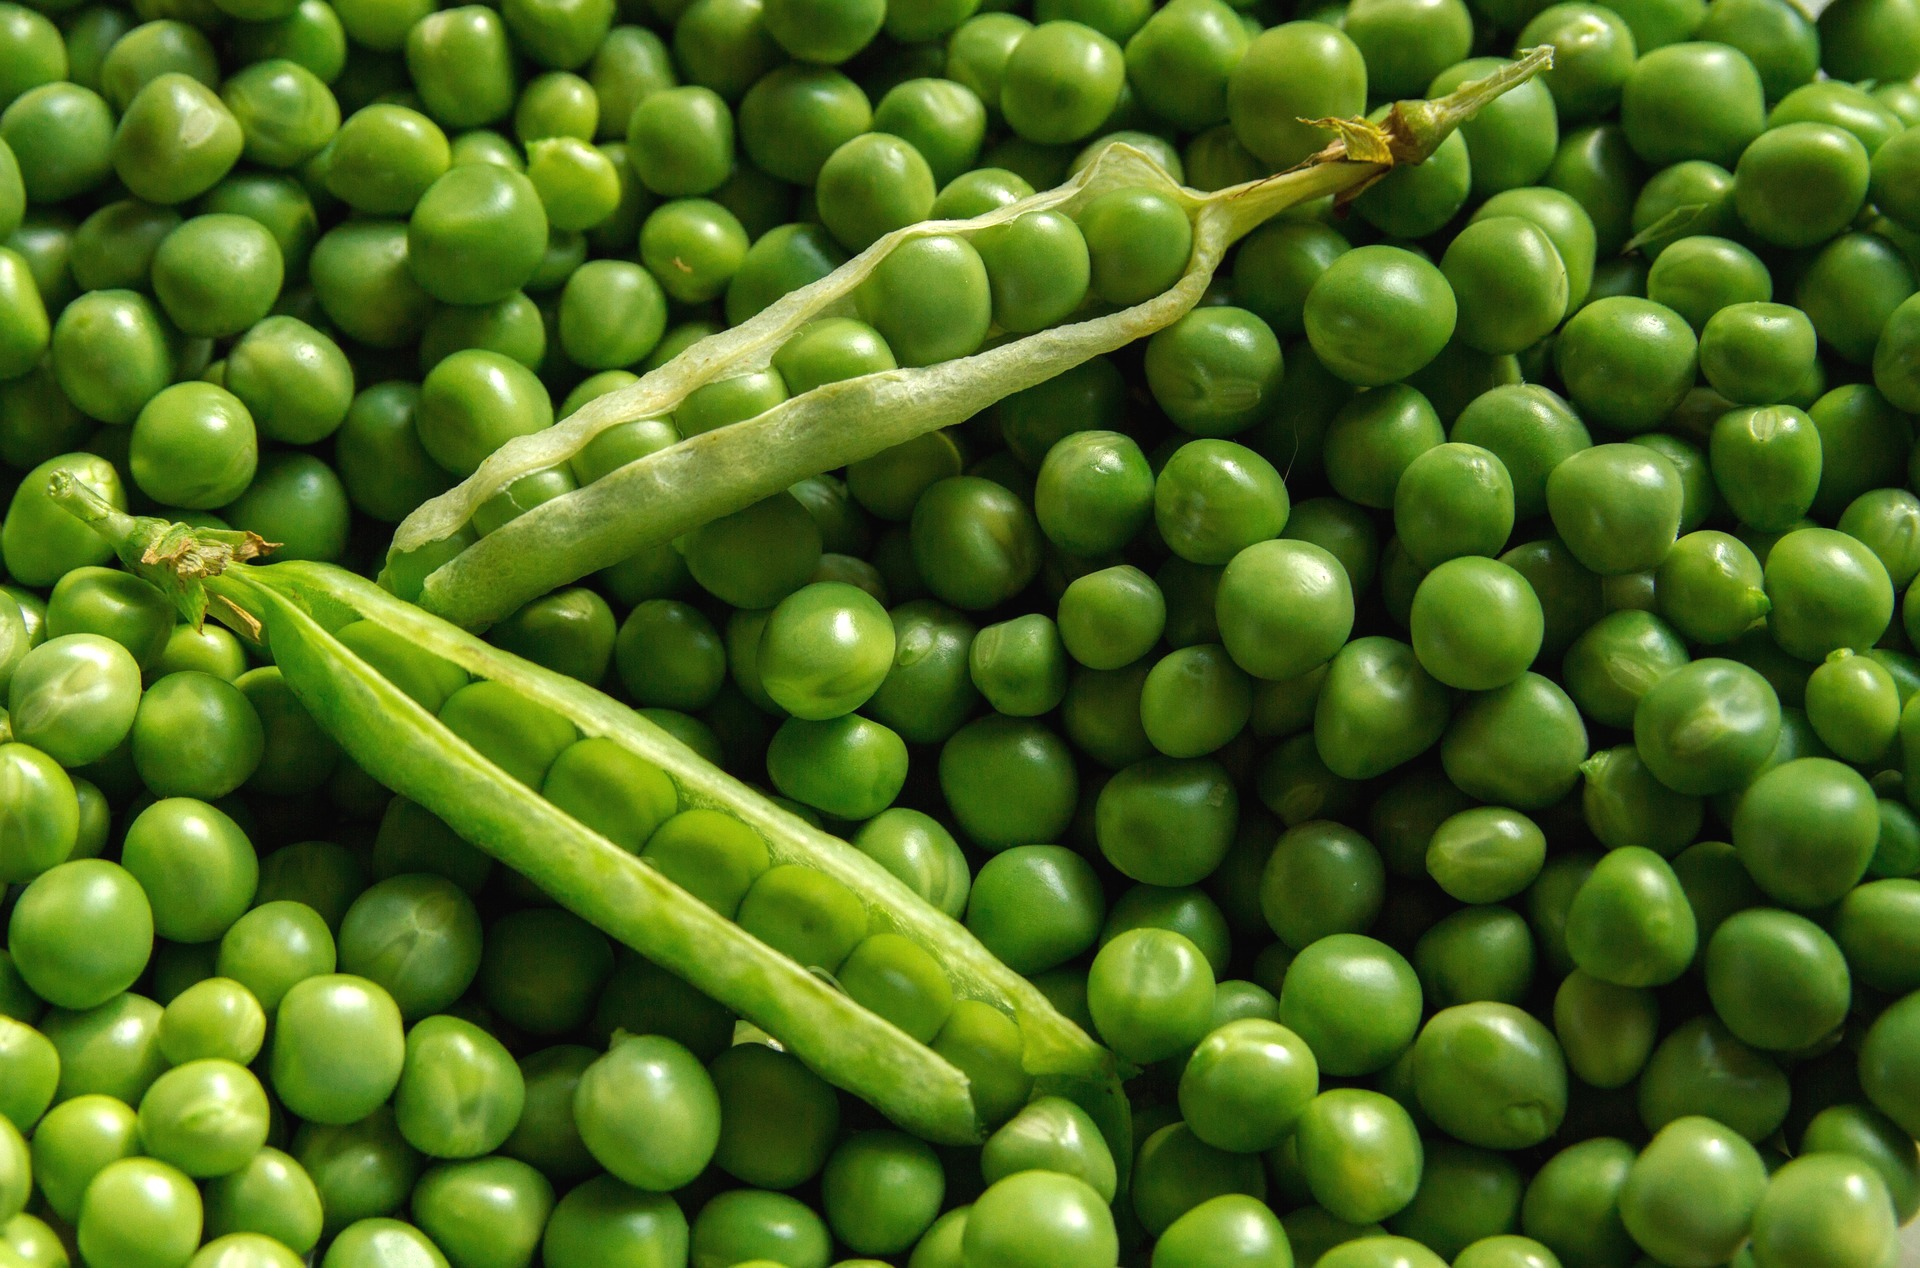 peas-and-pea-pods